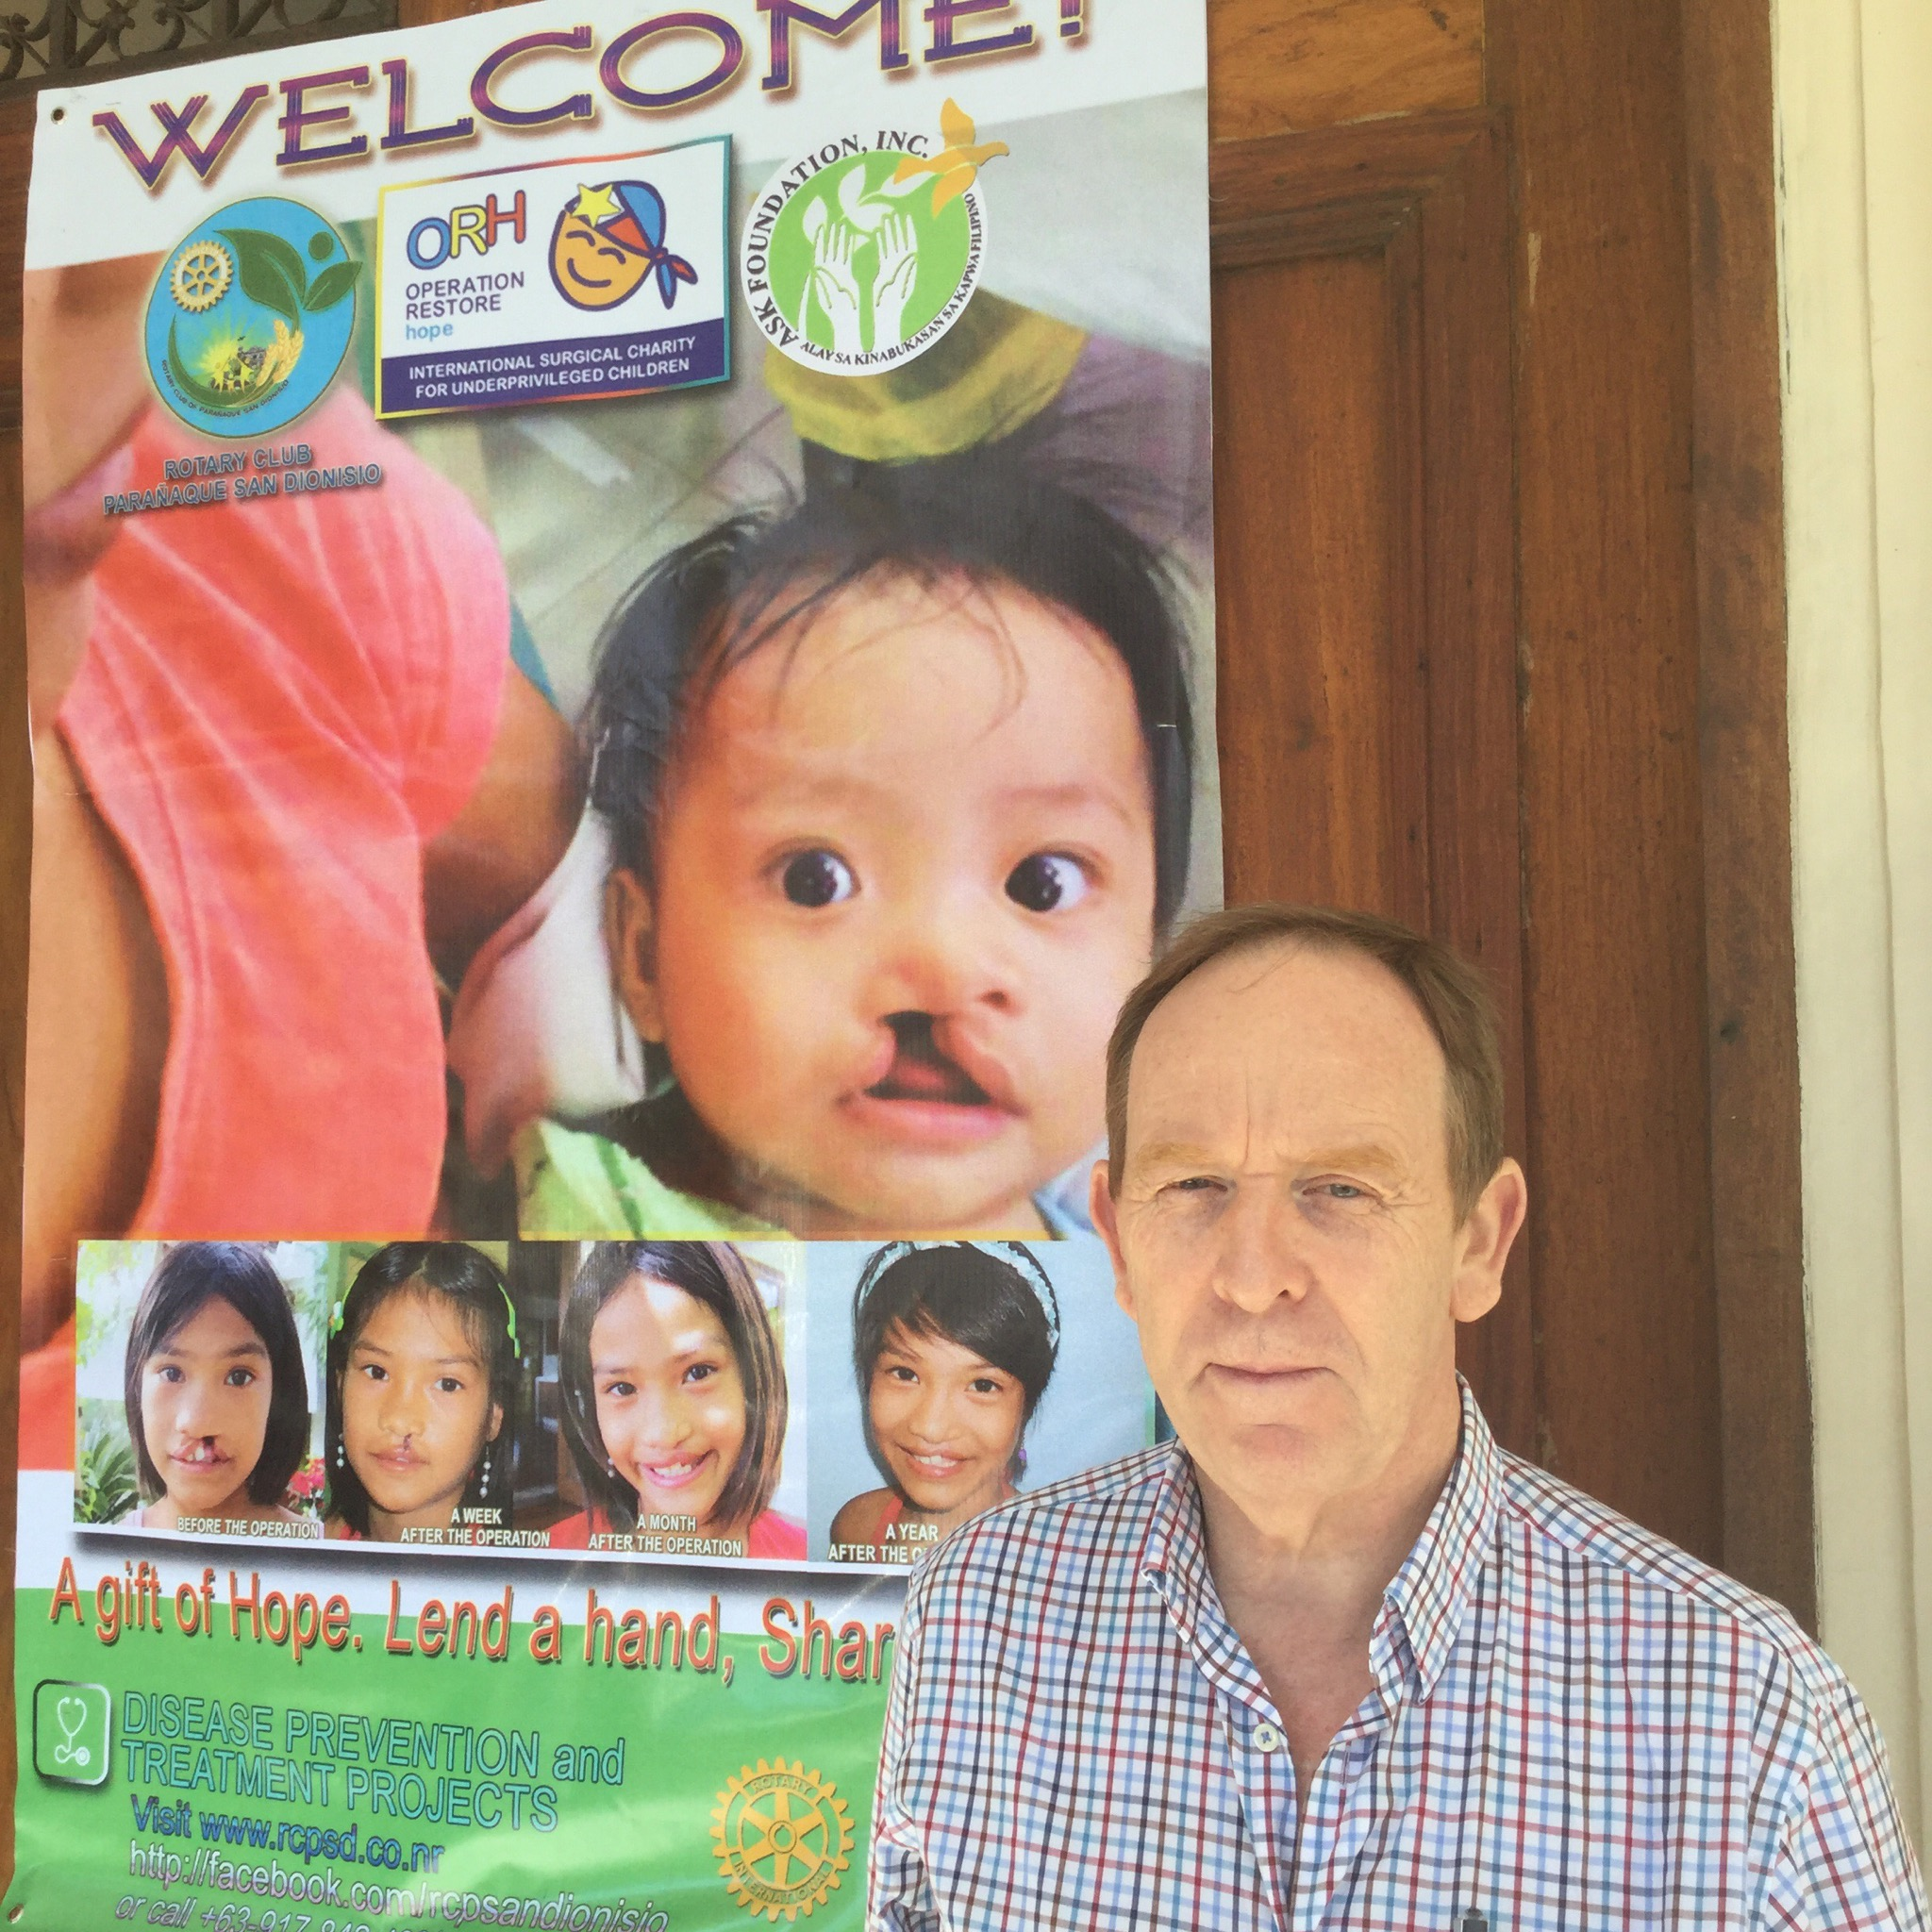 John Kinsella (above) at Manila Hospital where Operation Restore Hope (International NGO) are operating on underprivileged children and teenagers with cleft palate.